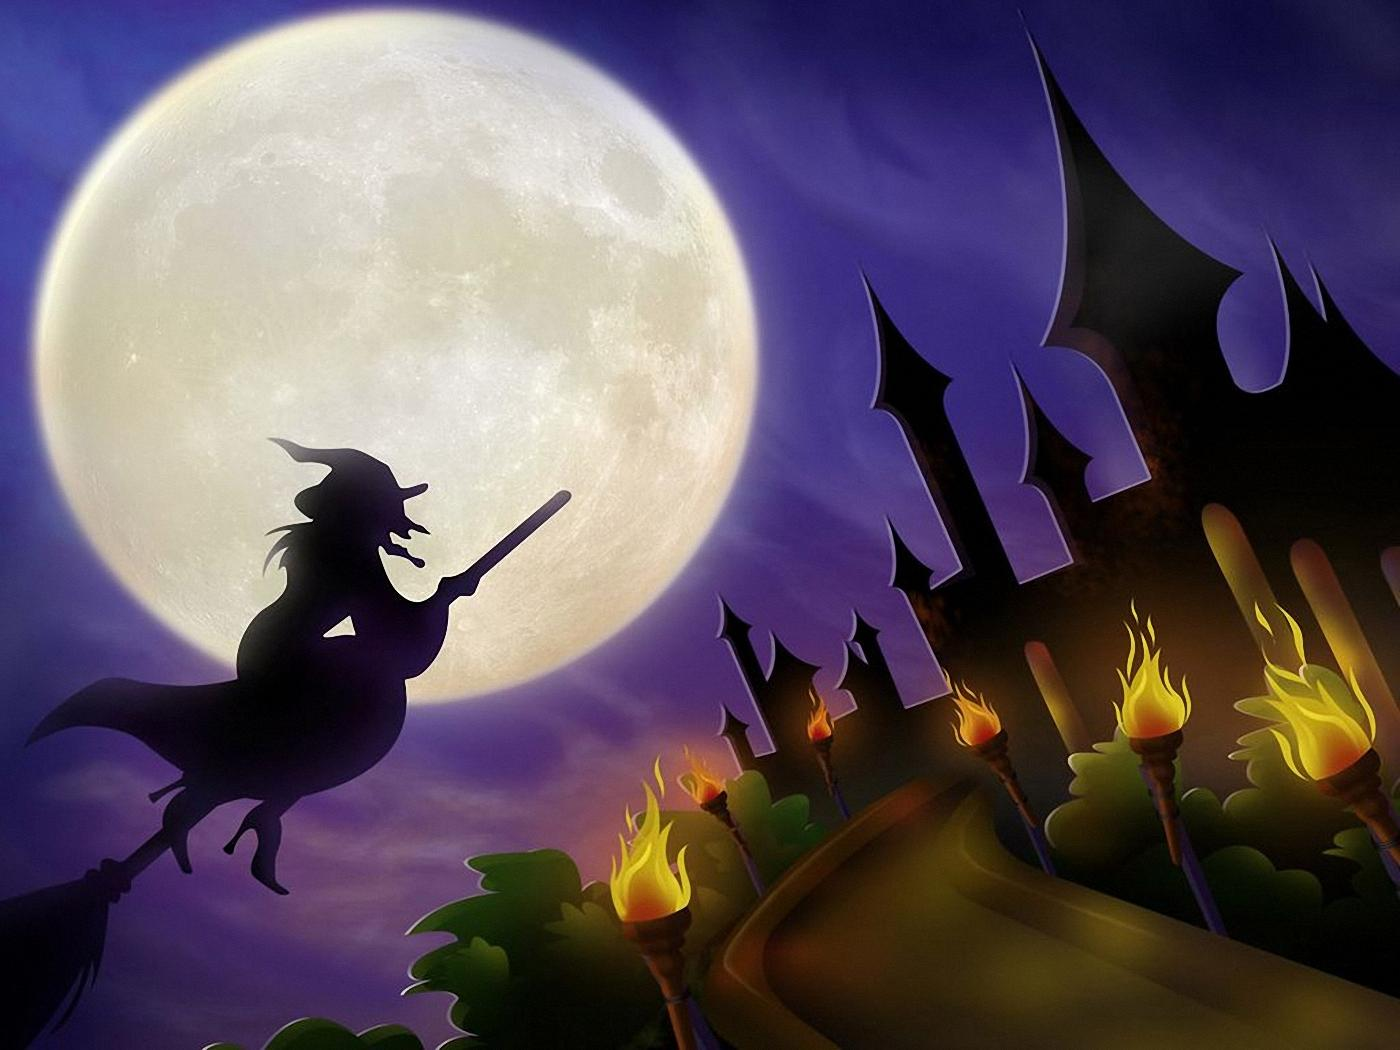 Scary Halloween 2012 HD Wallpapers Pumpkins Witches 1400x1050